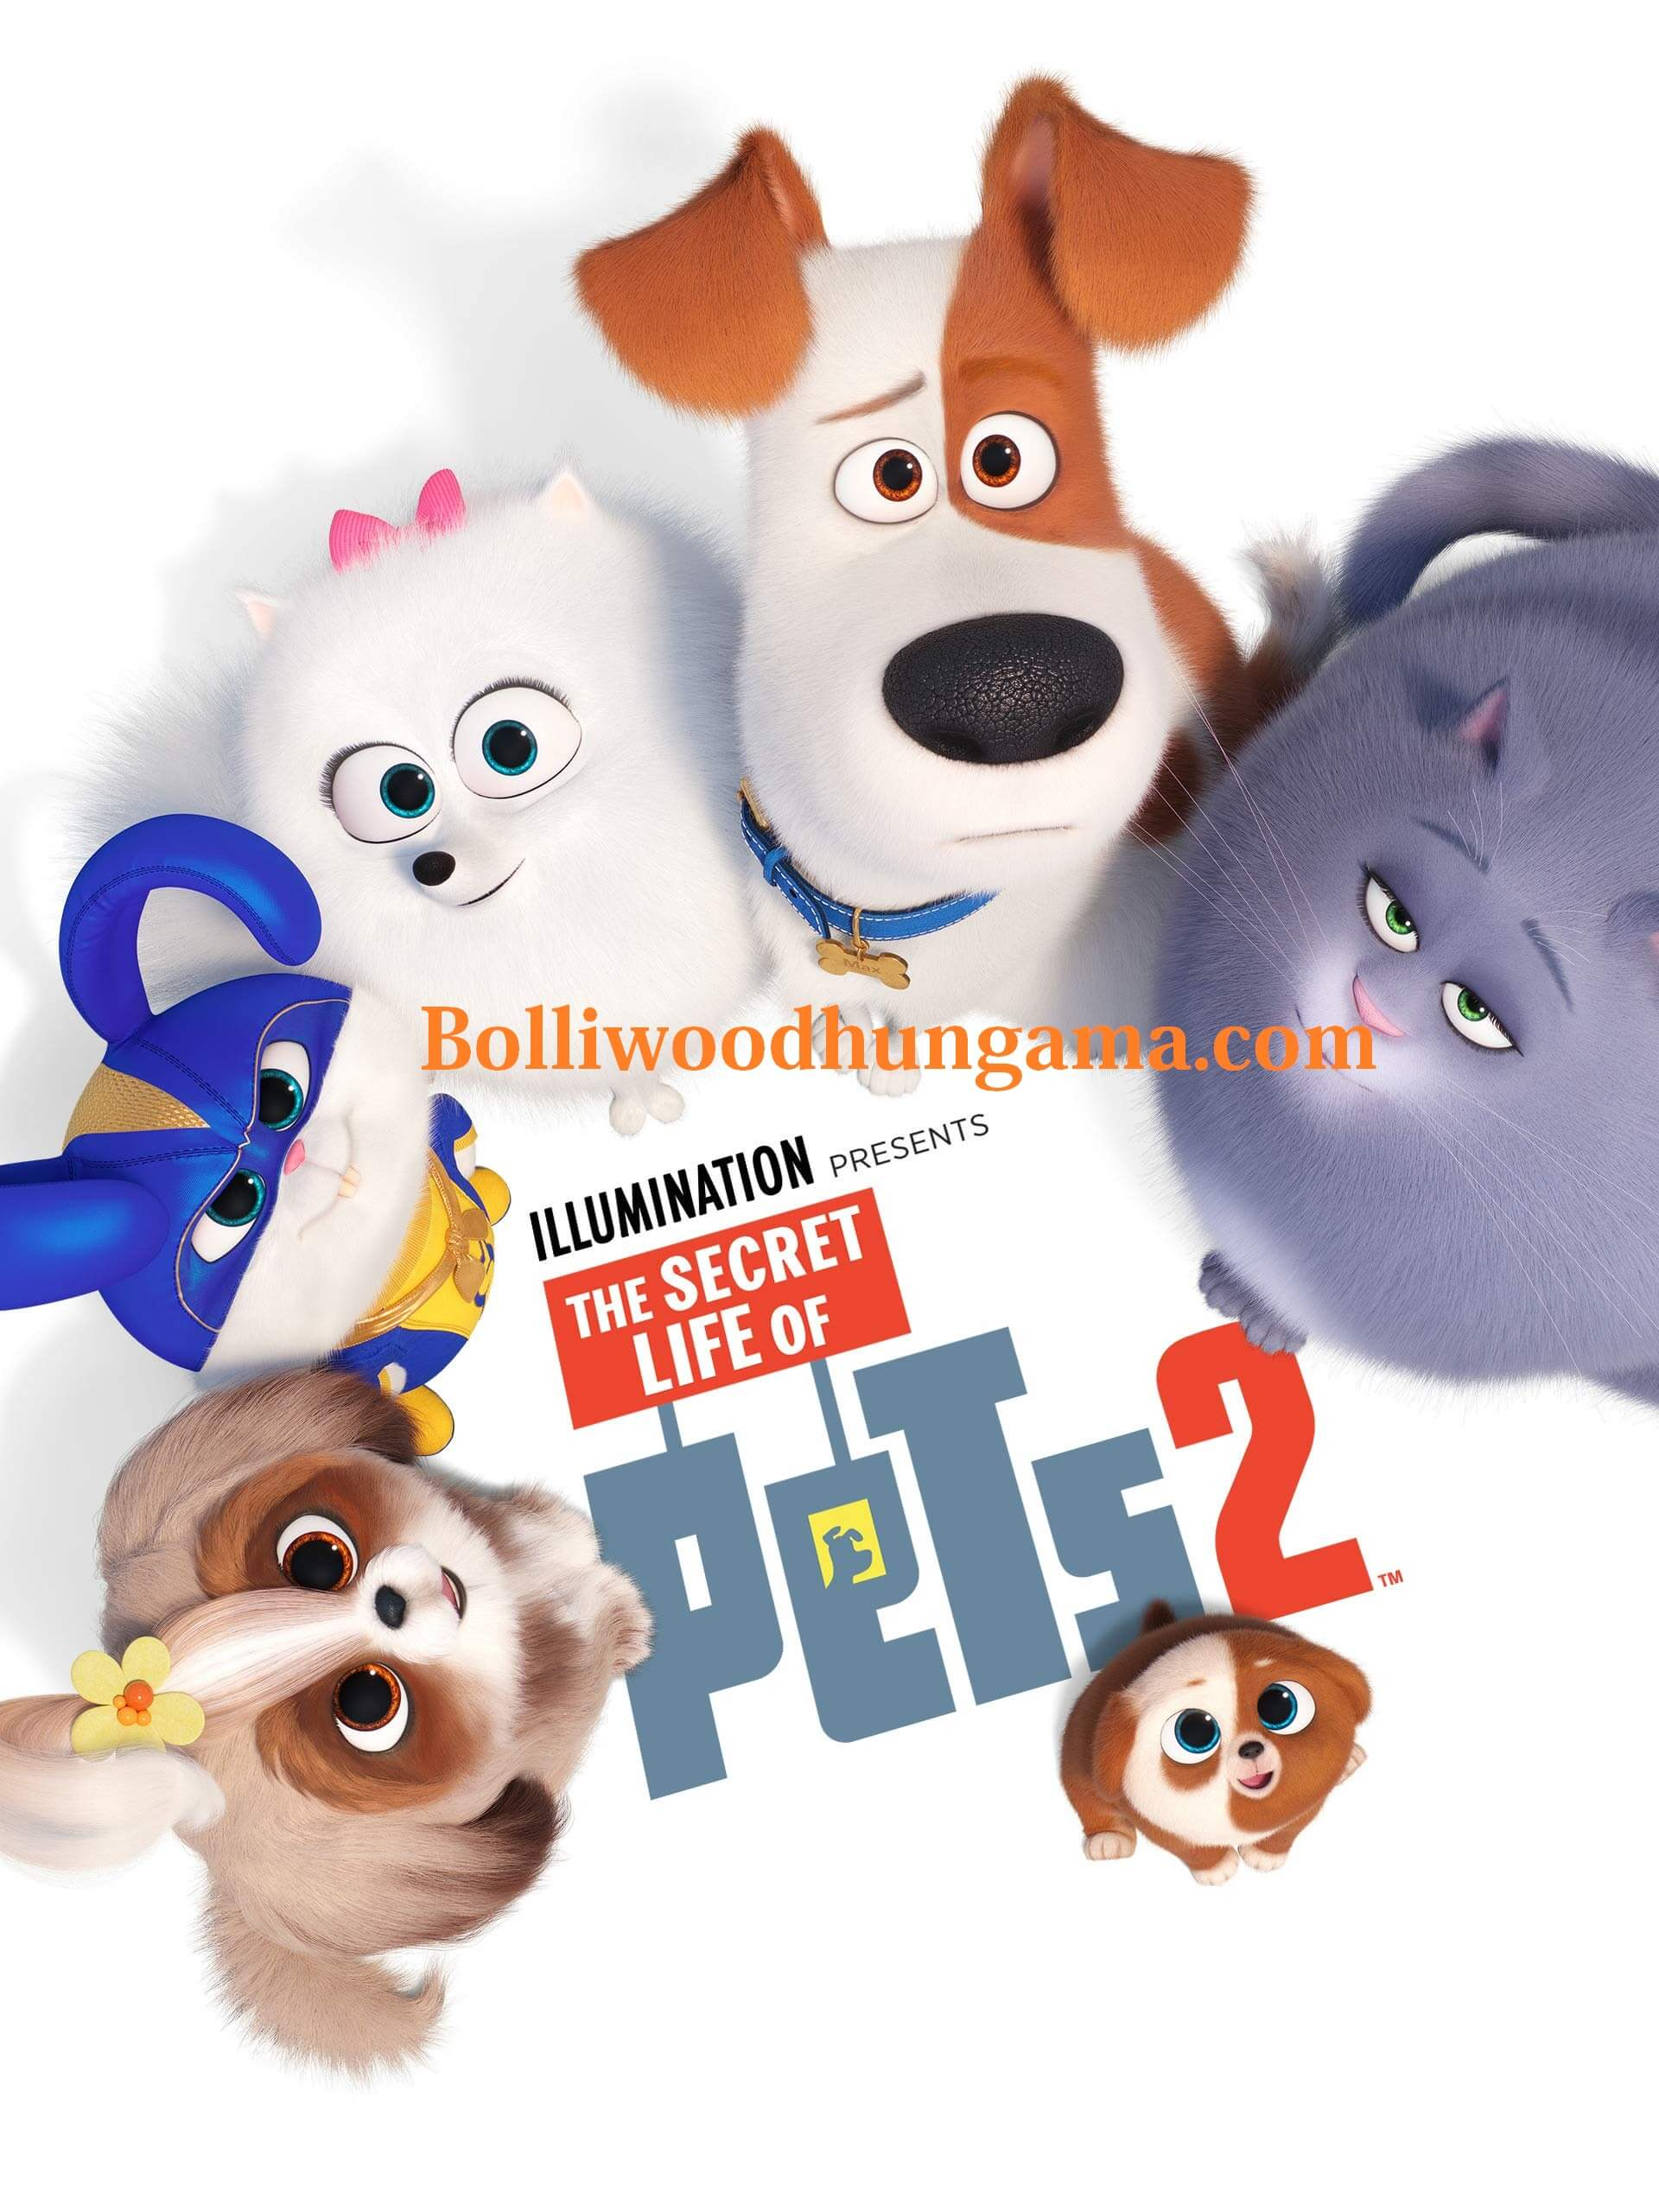 Bolliwood Hungama, Bolliwoodhungama.com, Movies for Download, New Movies For Download, the secret life of pets 2 cast, the secret life of pets 2 trailer, the secret life of pets full movie, the secret life of pets 1, the secret life of pets cast the secret life of pets full movie 2017, secret life of pets 2 release date uk, secret life of pets 2 dvd release date